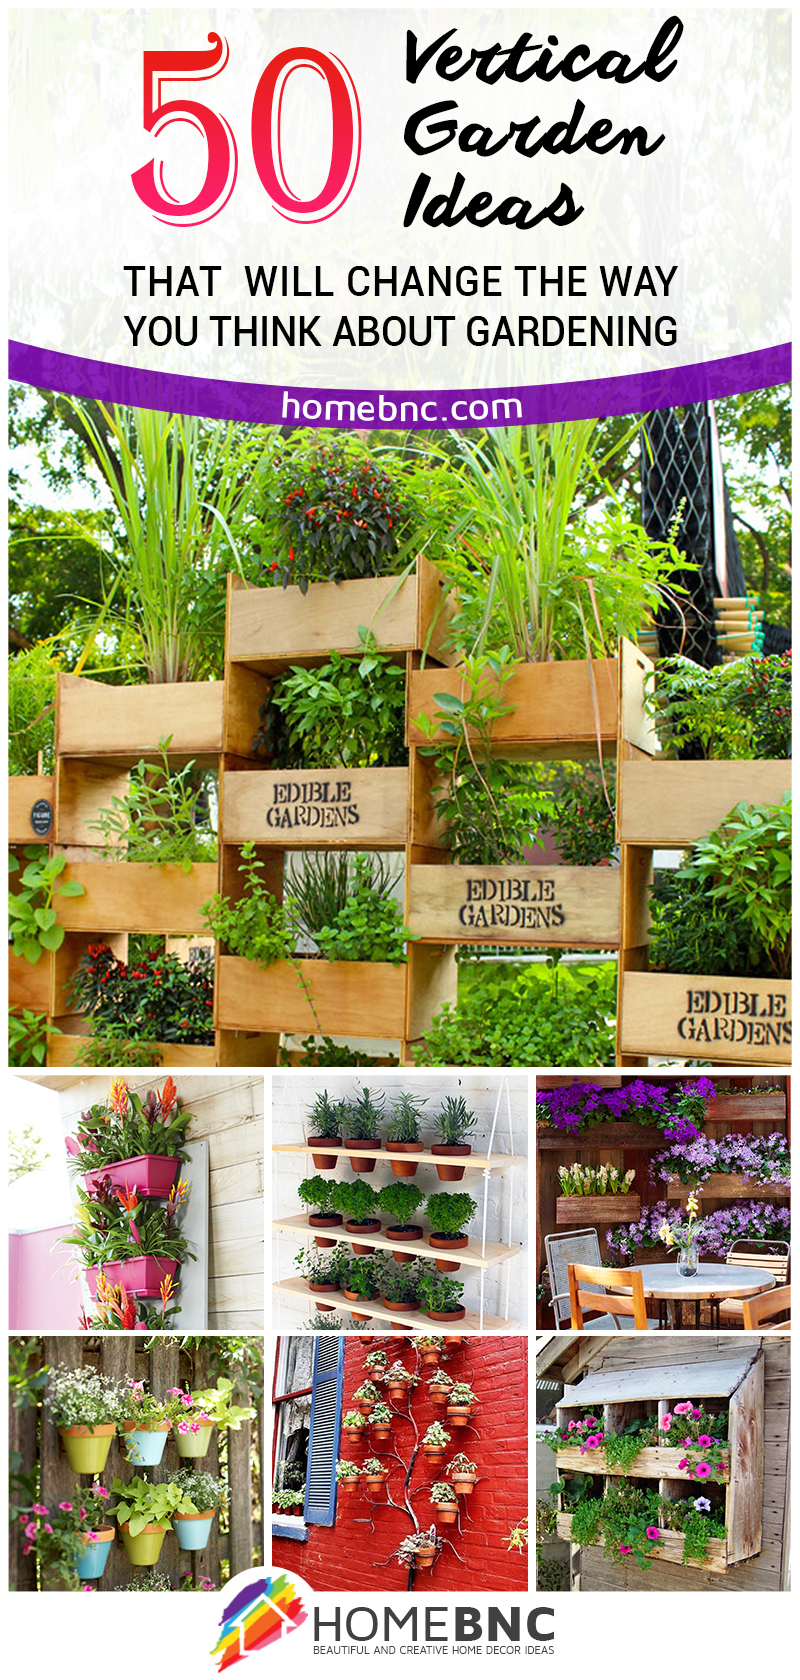 The 50 Best Vertical Garden Ideas and Designs for 2019 Narrow Page Garden Design Ideas Home on narrow garden design with stone, best garden ideas, painted flower pot ideas, japanese garden ideas, narrow patio ideas, unique garden fountain ideas, road design ideas, container flower pot arrangement ideas, small water garden fountain ideas, front yard landscape design ideas, narrow gardening ideas, small narrow backyard ideas, narrow family room designs, long narrow garden ideas, narrow decorating ideas, small rose garden layout ideas, side yard landscaping ideas, narrow landscape ideas, japanese modern landscape design ideas, small outdoor spaces design ideas,